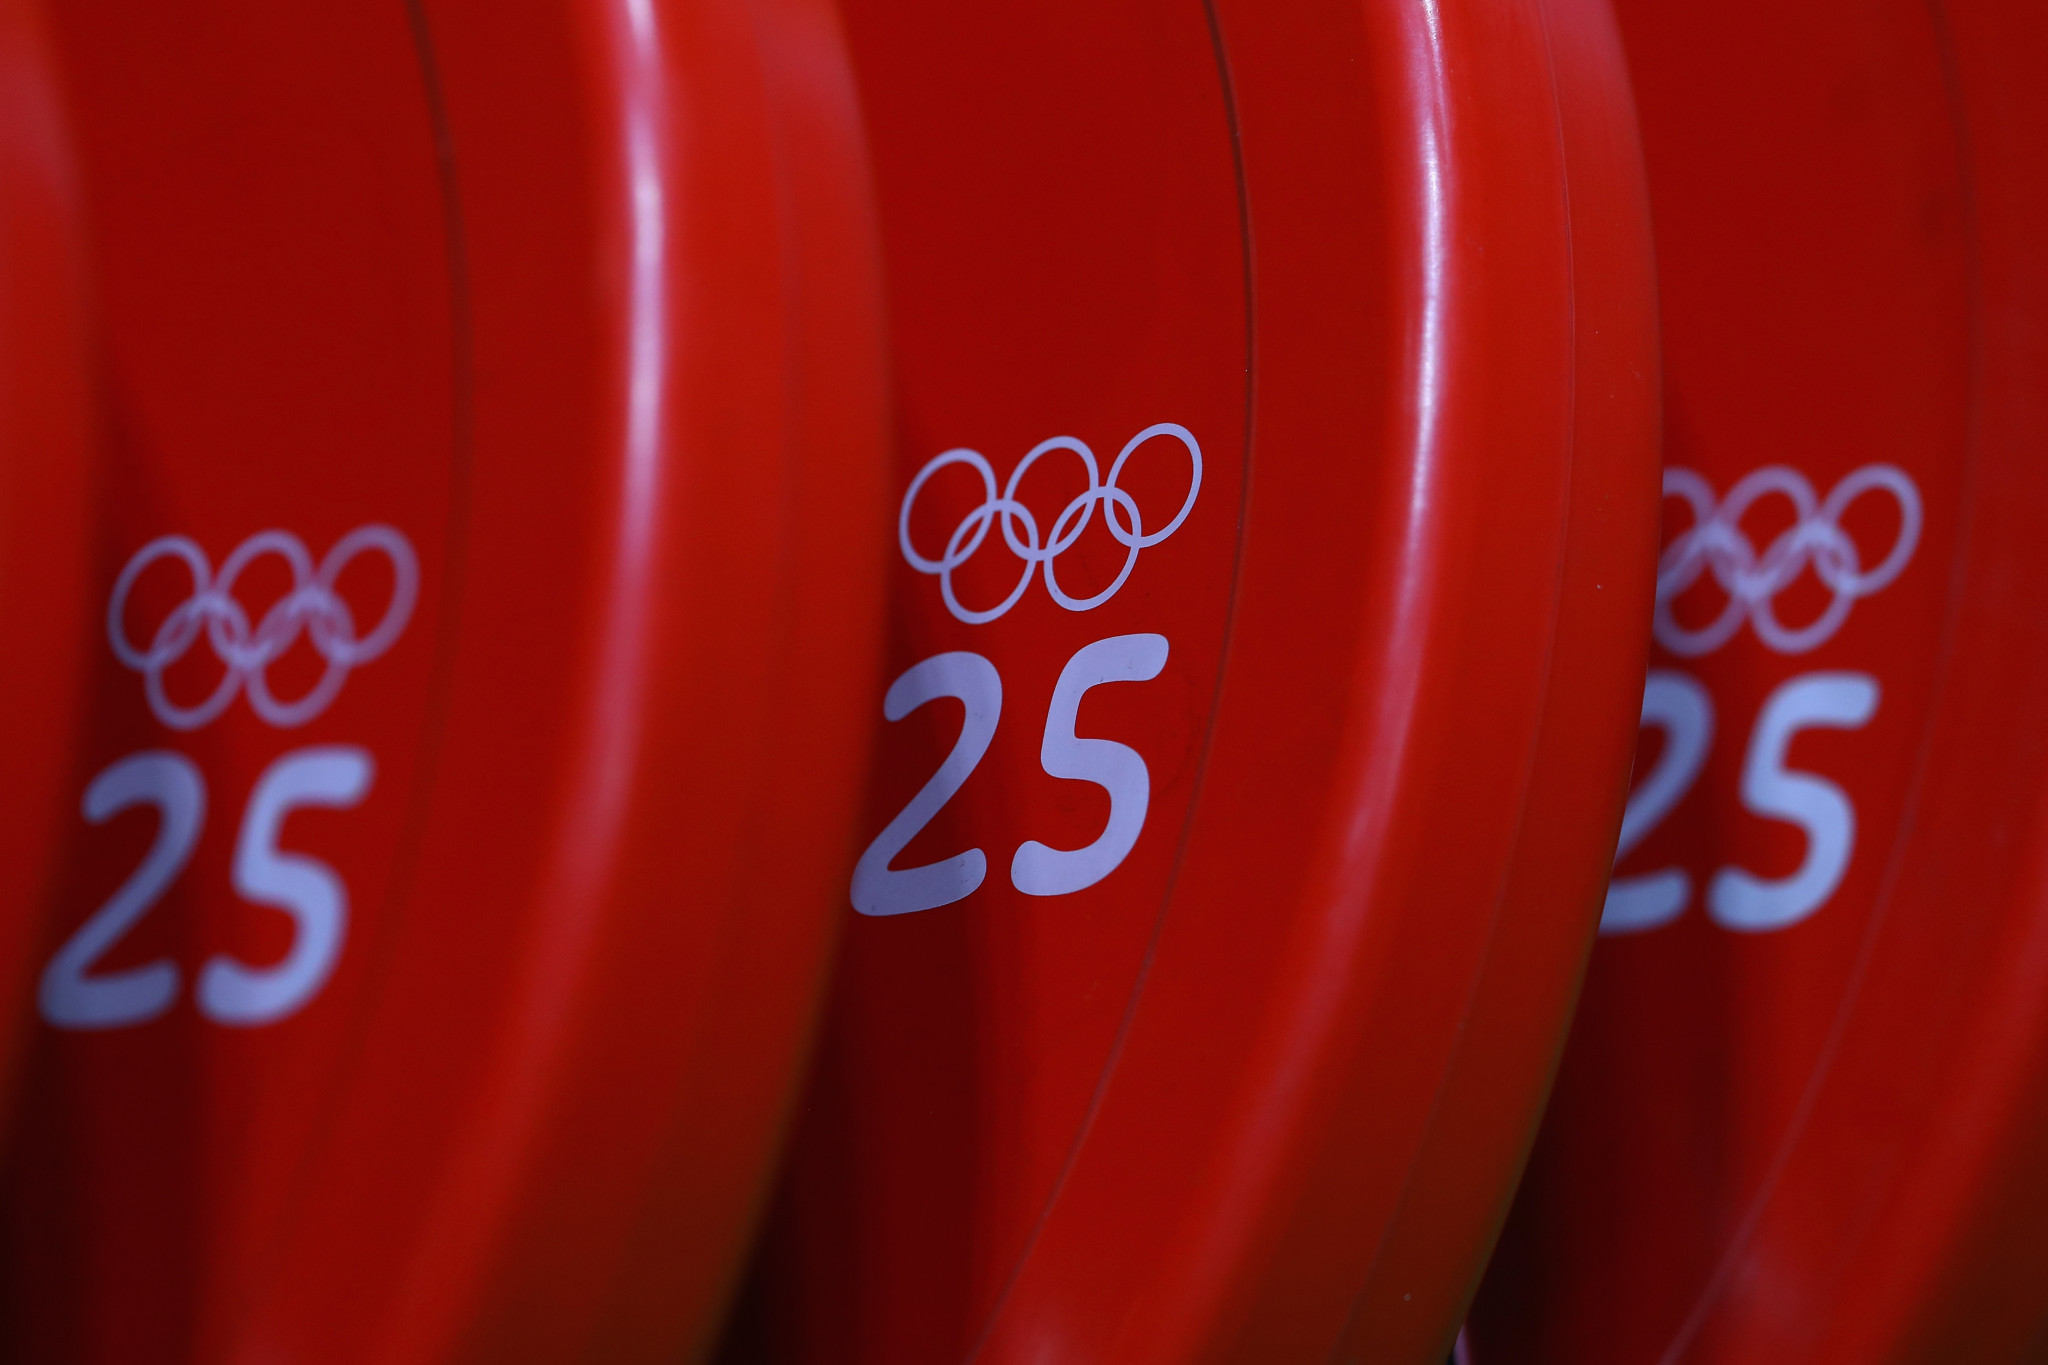 A virtual Congress which could decide weightlifting's Olympic future is underway ©Getty Images